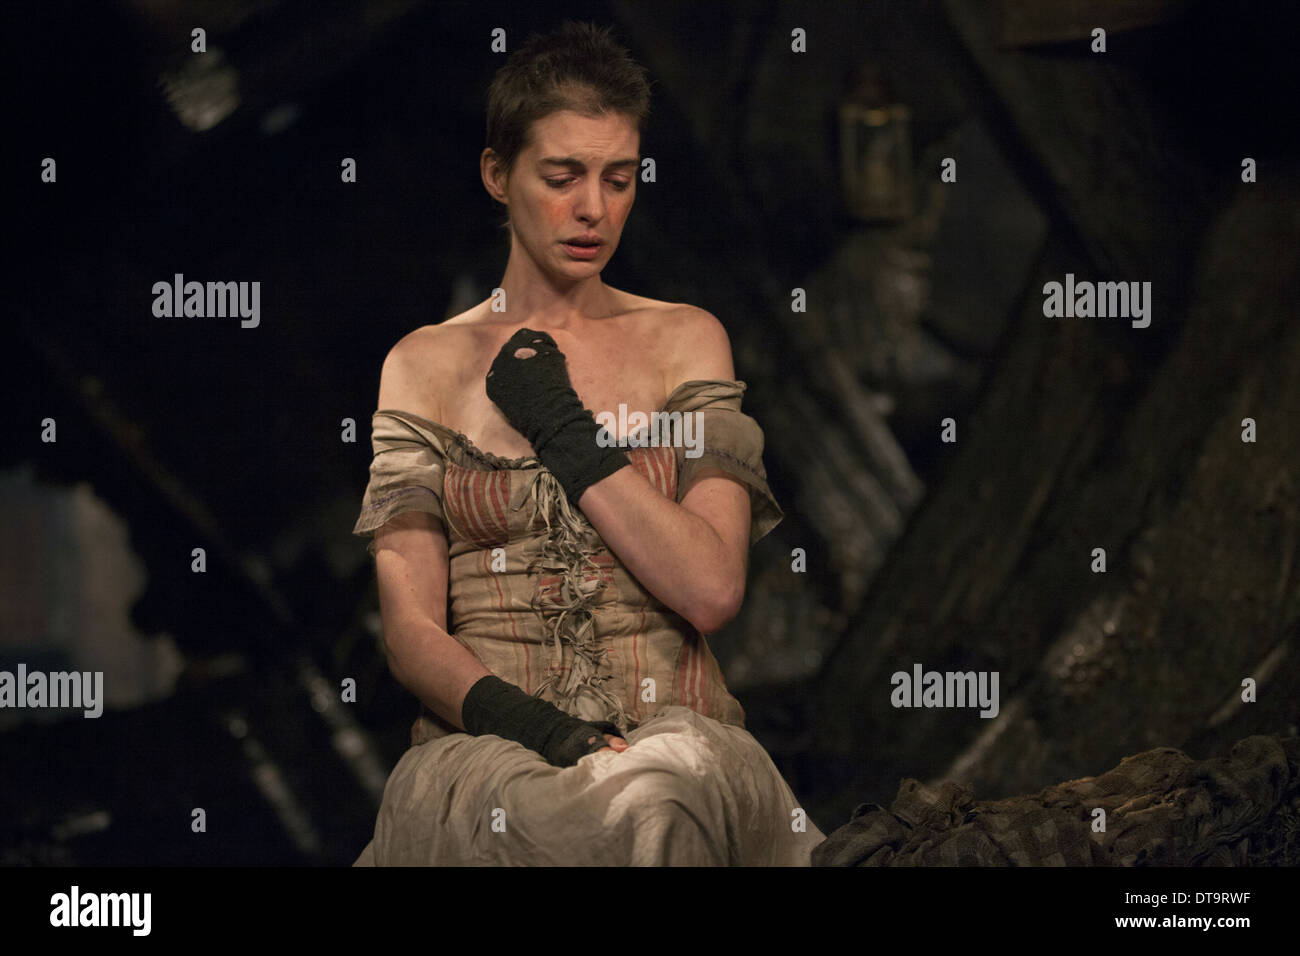 Anne Hathaway Les Miserables 2012 Stock Photo Alamy